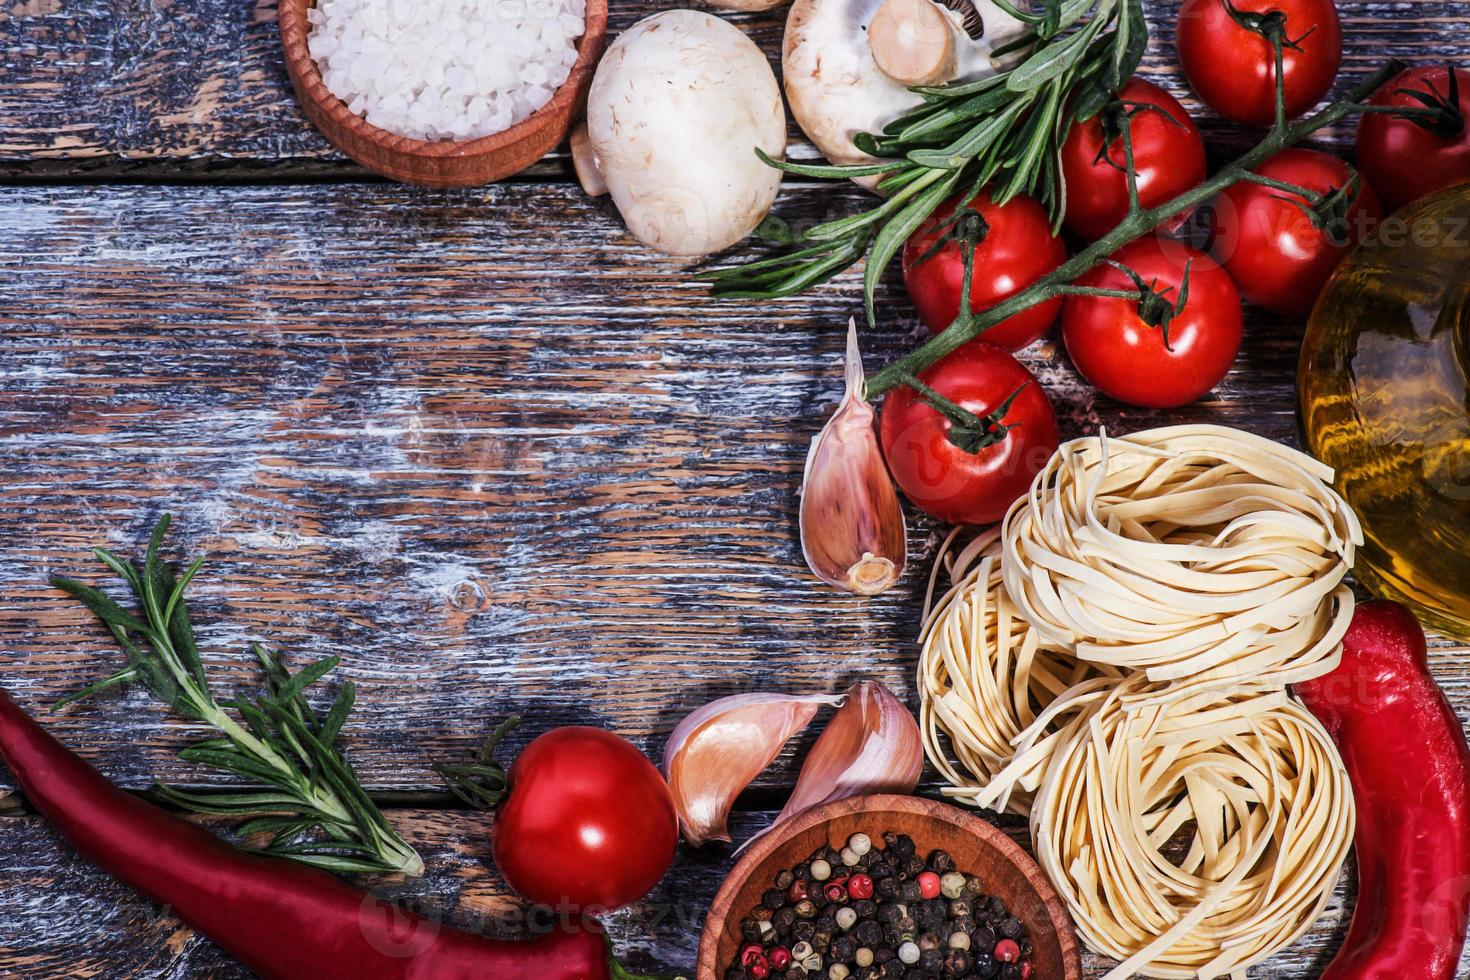 Ingredients for pasta on a wooden background photo